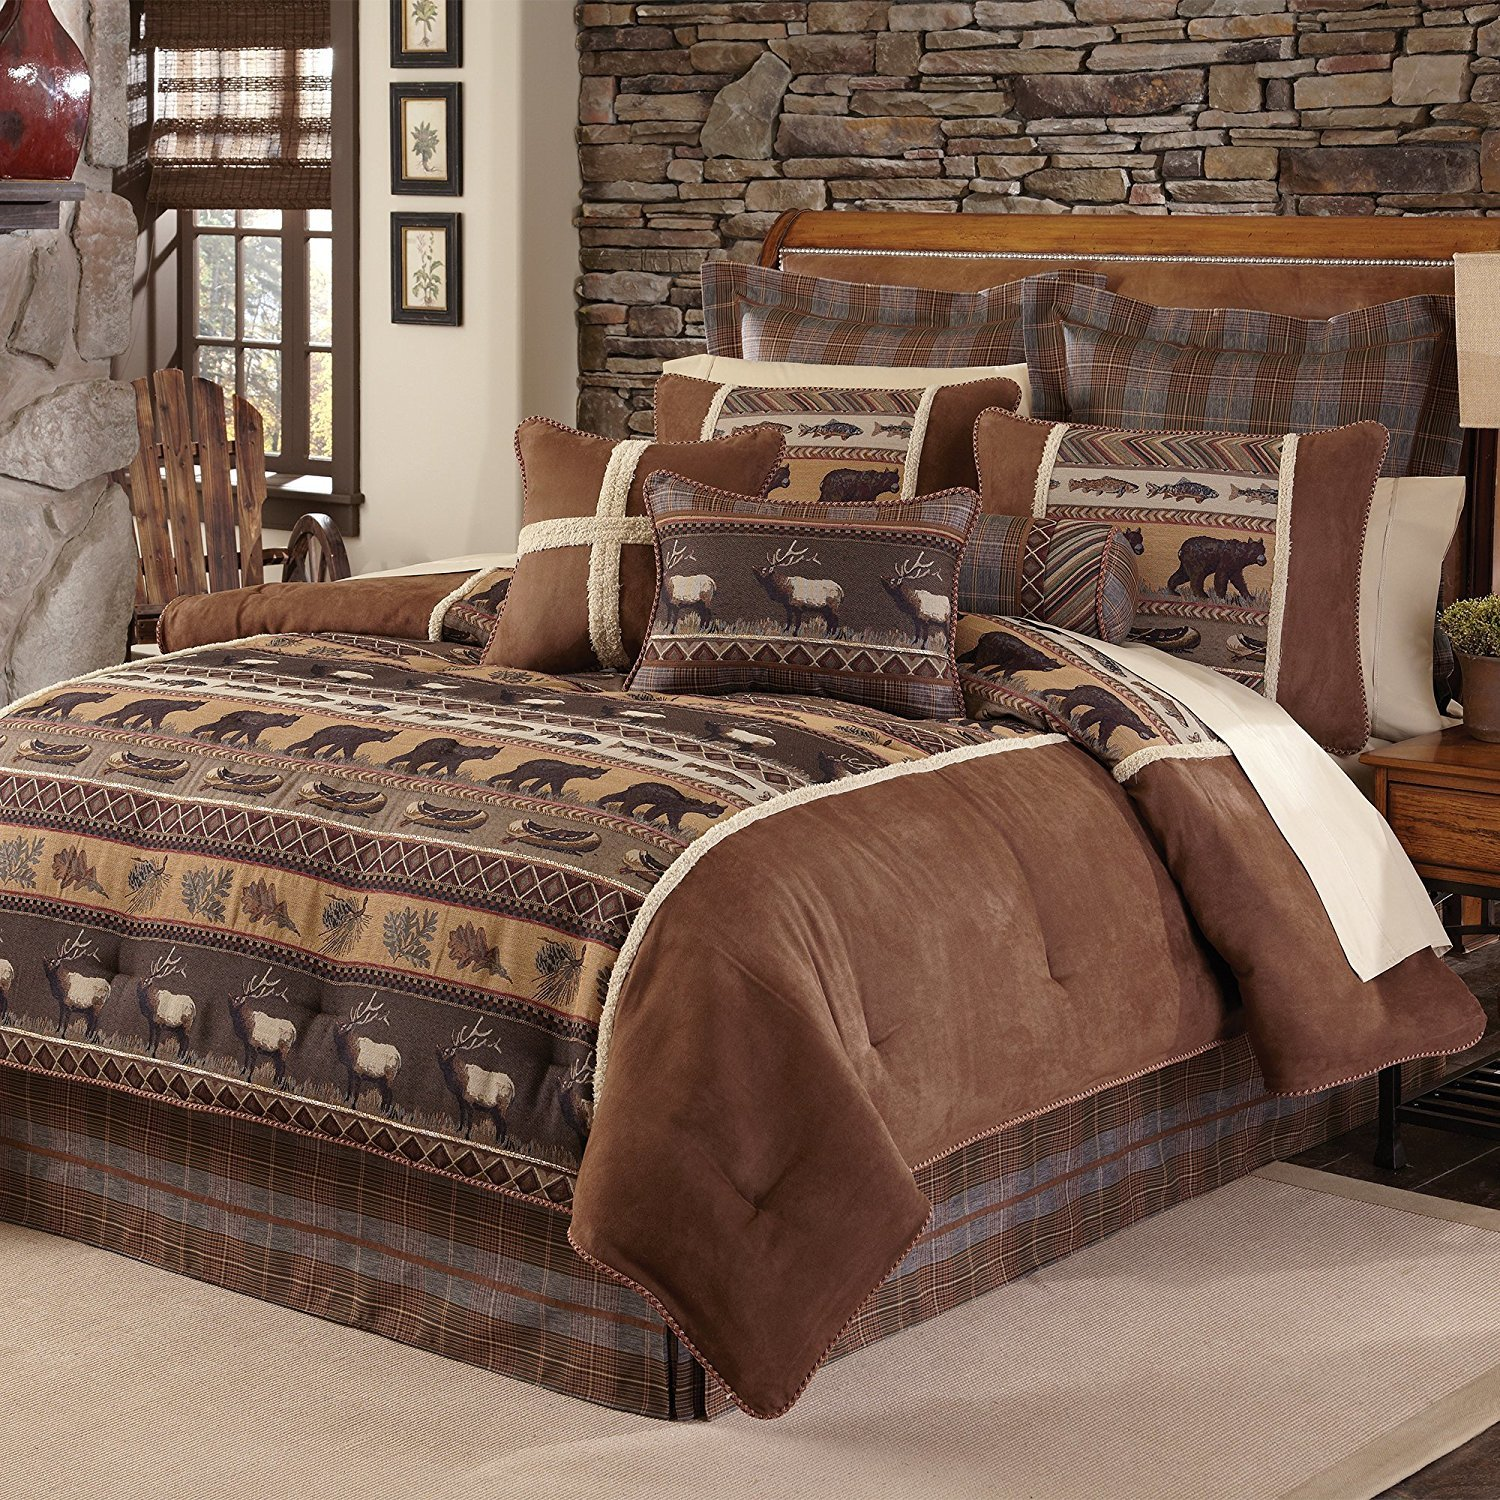 Bear Lodge And Leaves Bedding Sale Ease Bedding With Style